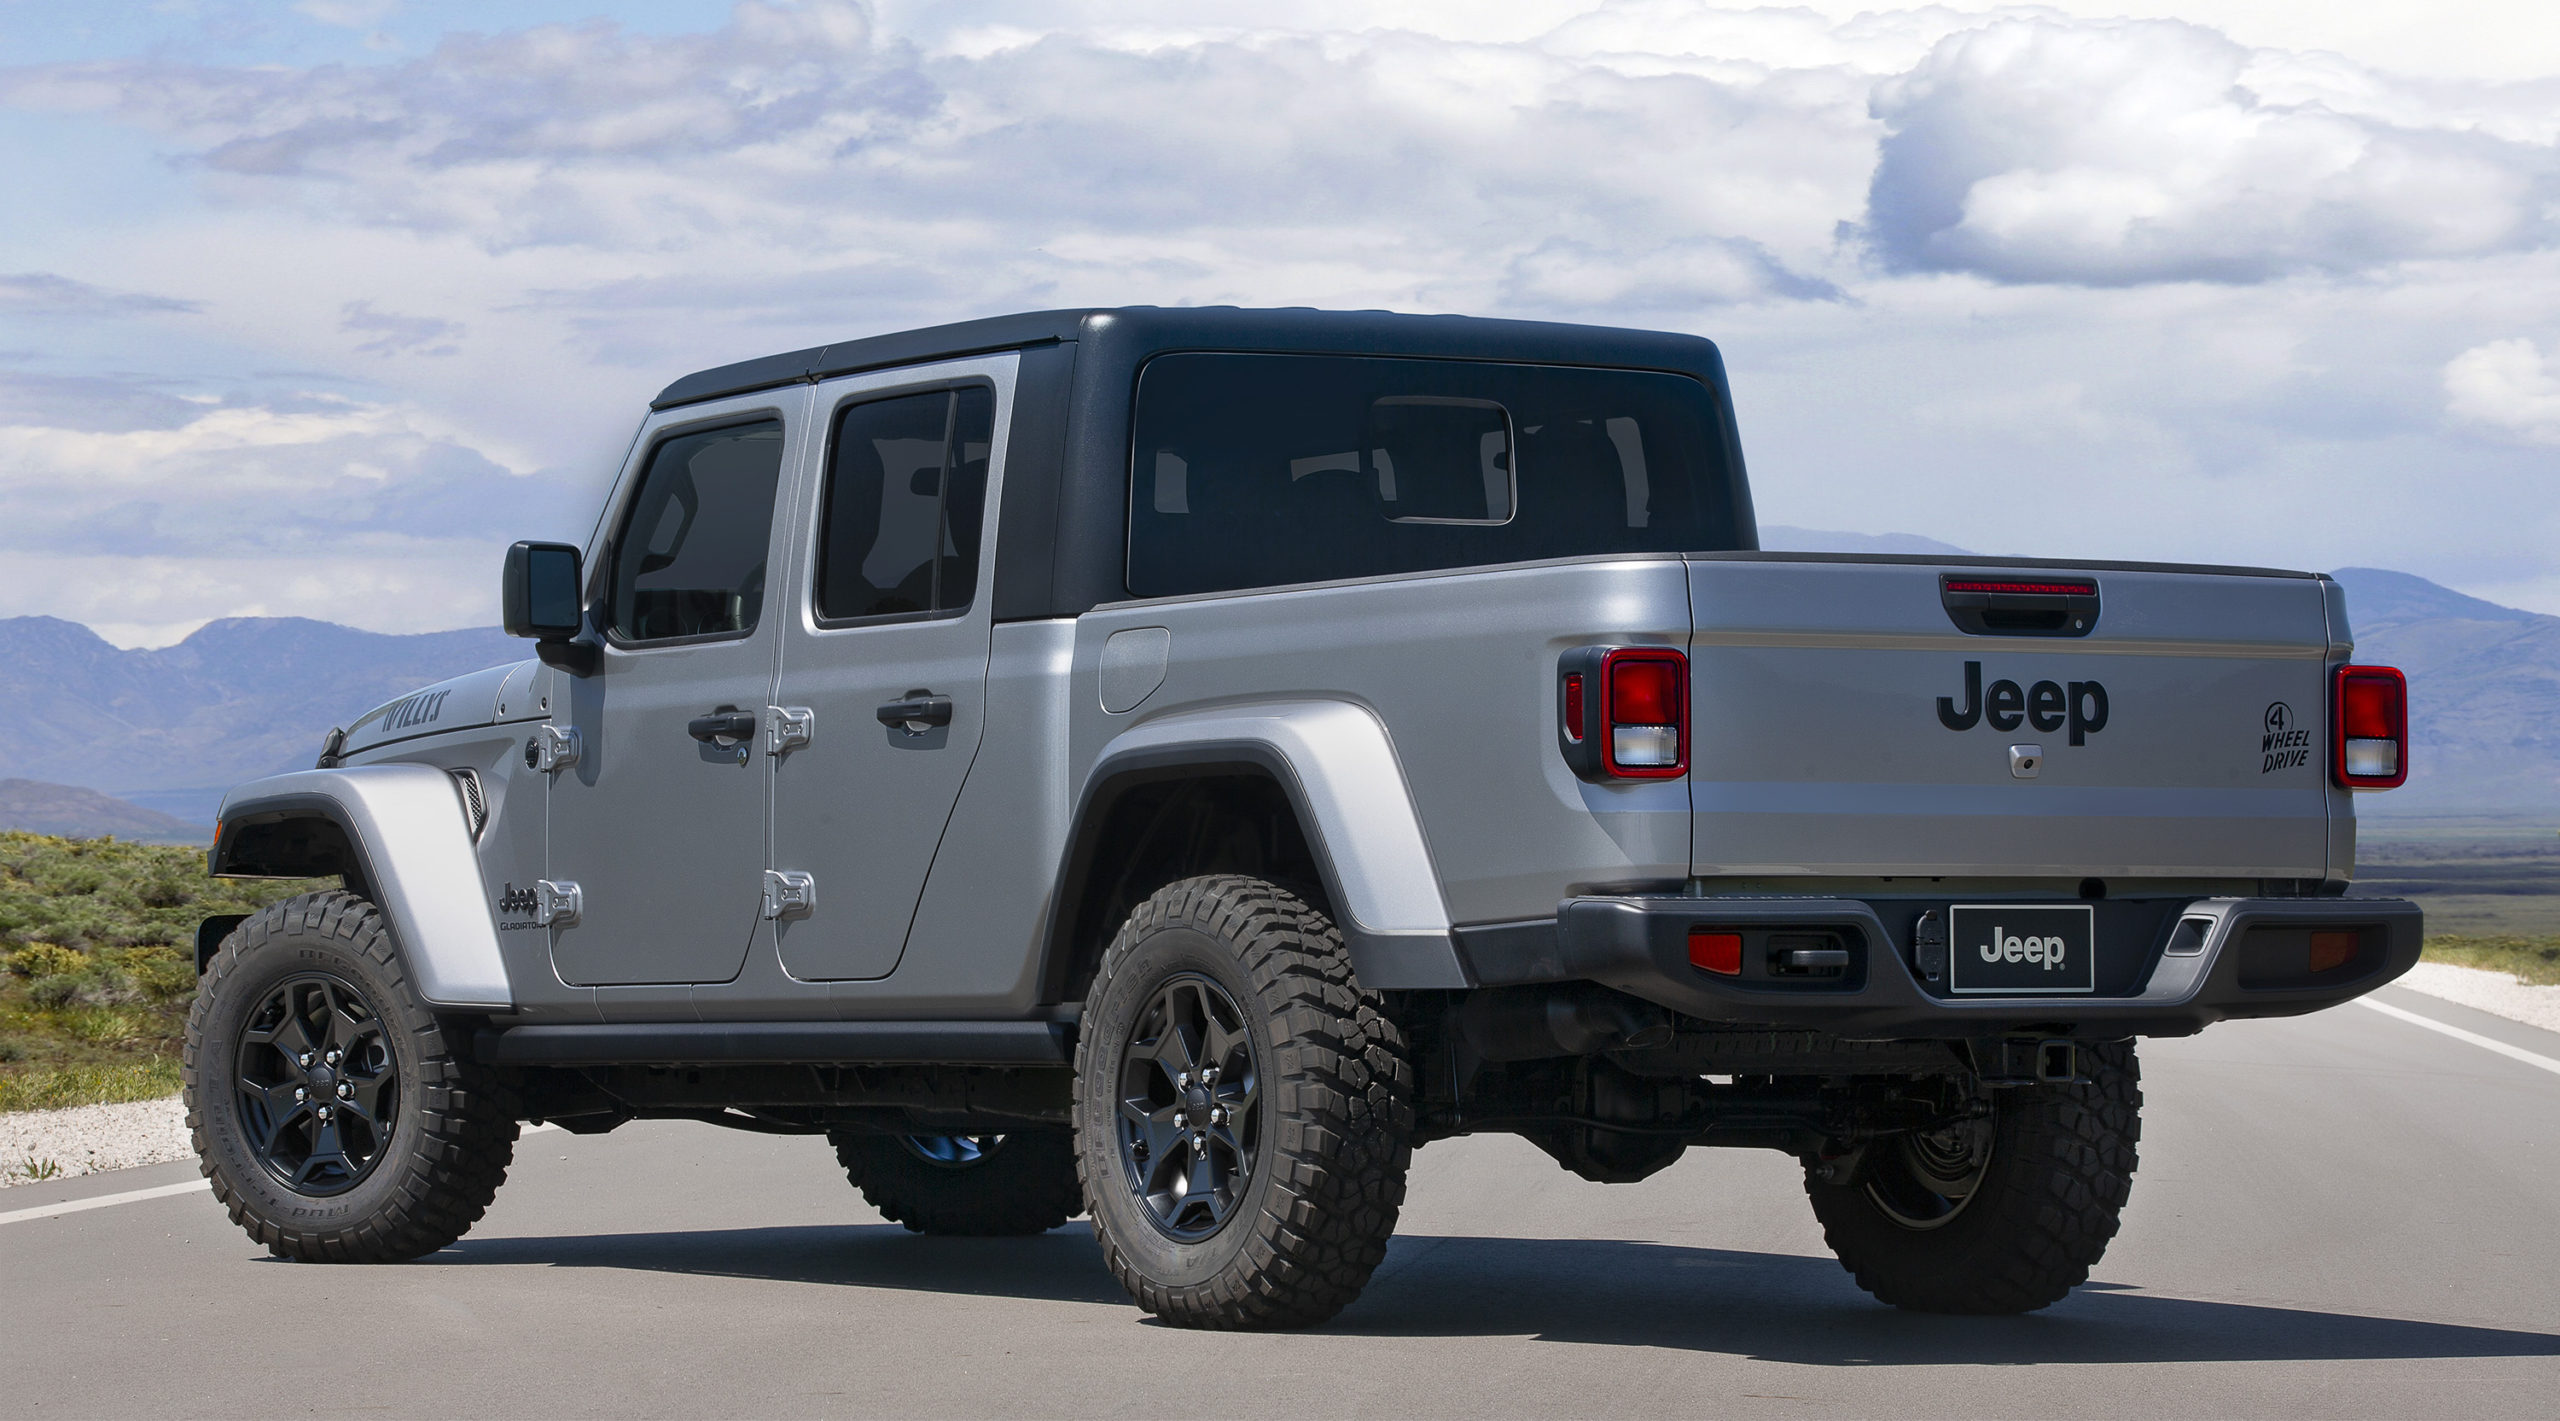 2021 Jeep Gladiator Willys rear 3/4